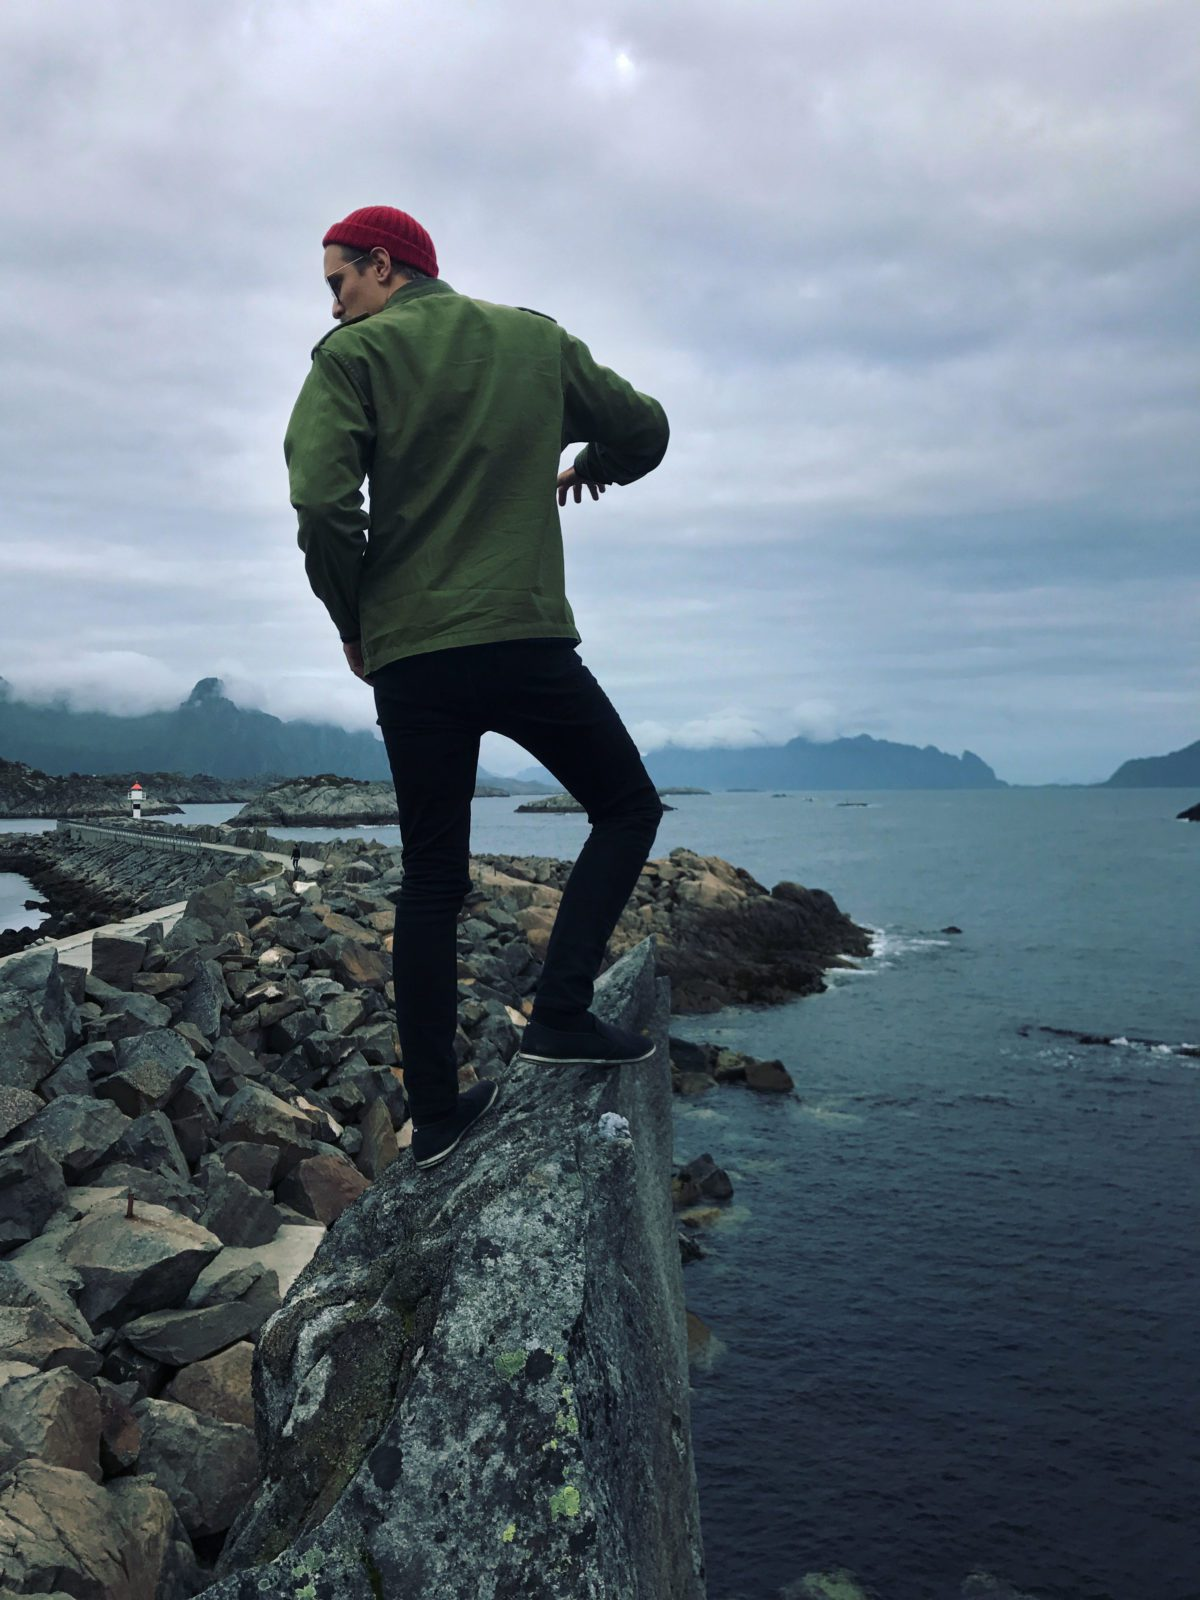 Climbing on a rock in Lofoten.